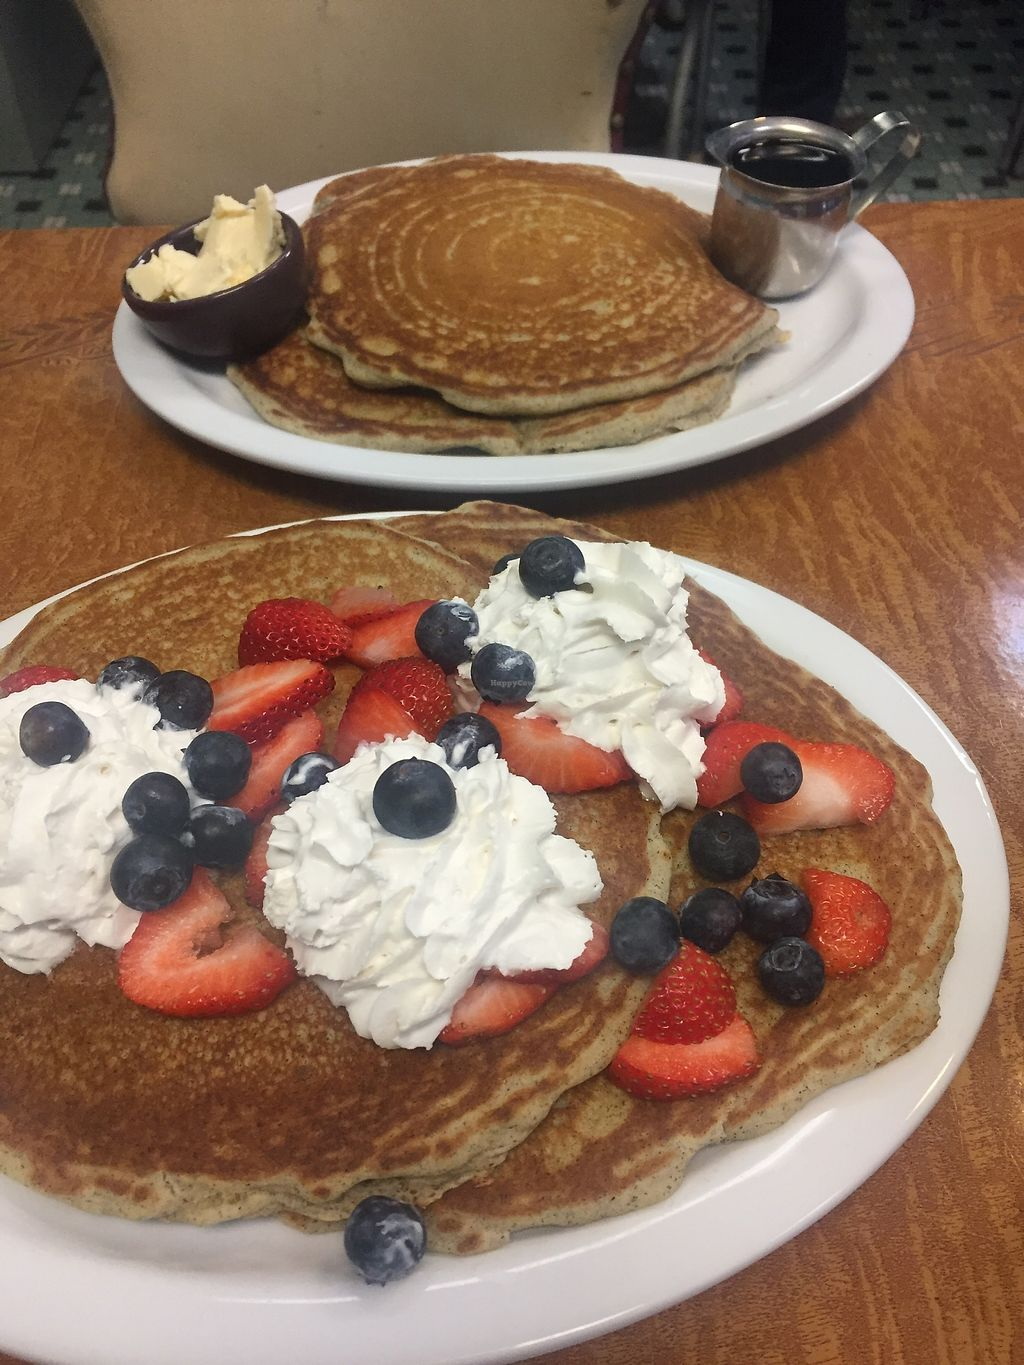 """Photo of The Tasty  by <a href=""""/members/profile/Kittybiscuit"""">Kittybiscuit</a> <br/>Pancakes <br/> November 11, 2017  - <a href='/contact/abuse/image/74254/324124'>Report</a>"""